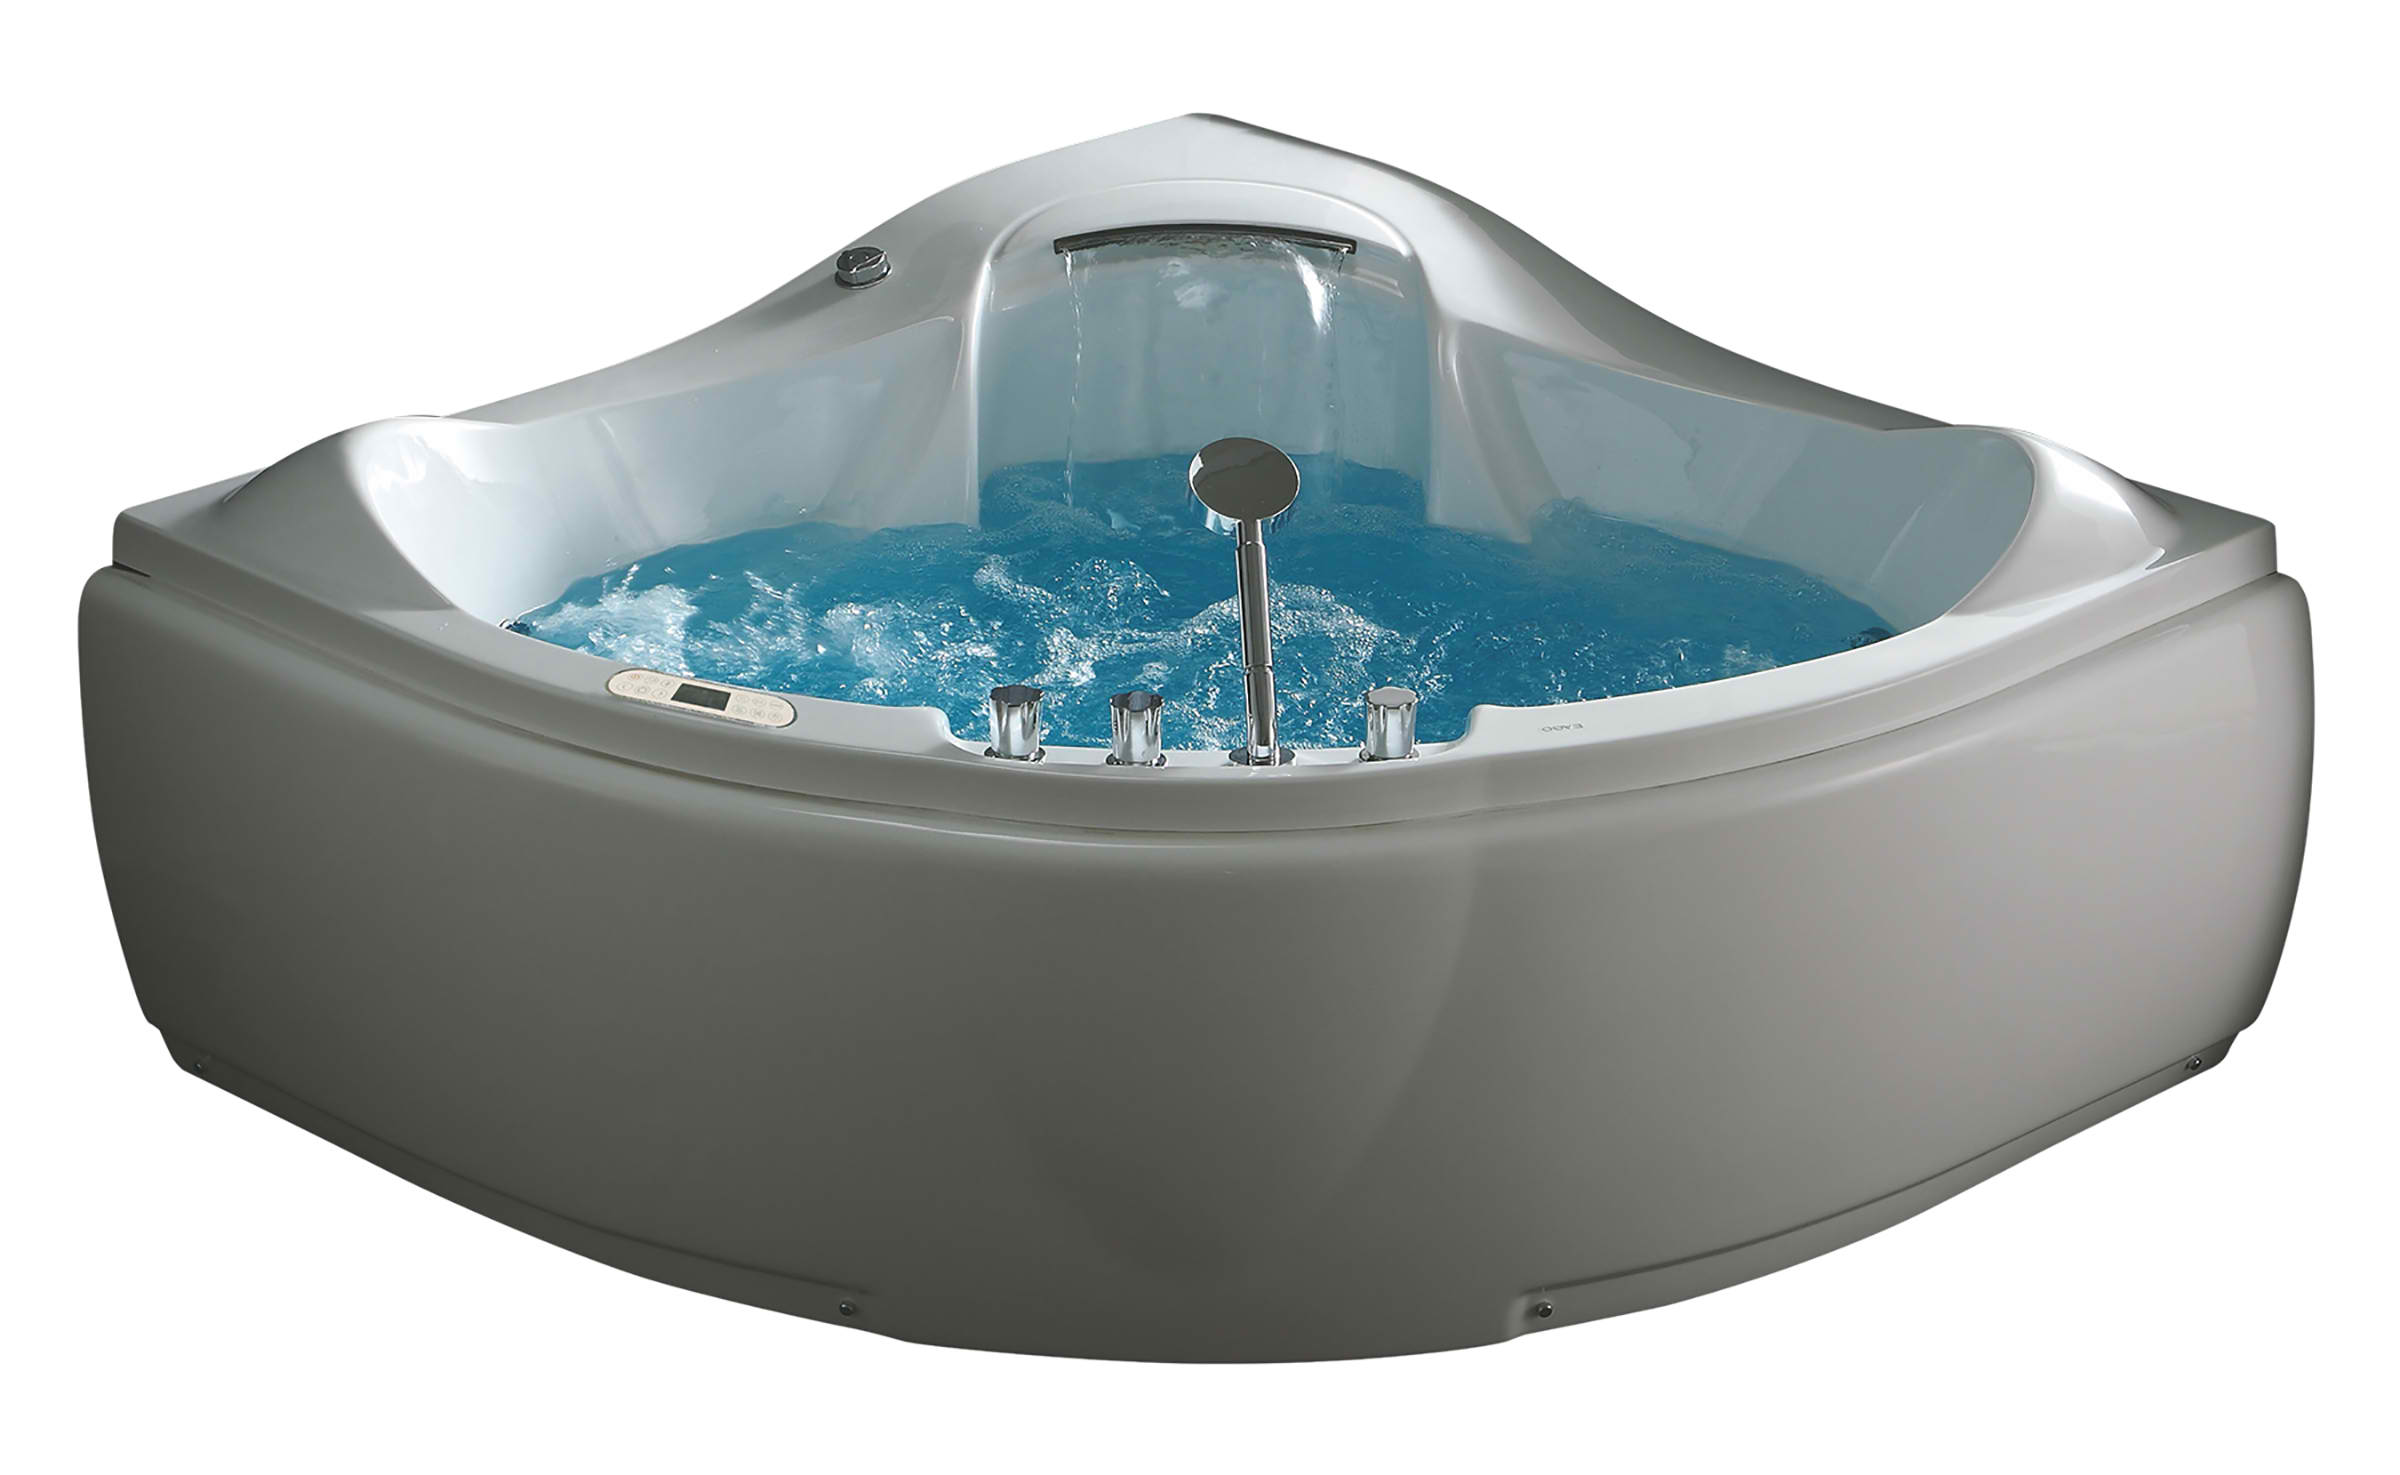 Whirlpool Spas | Buy Whirlpool Spas online with free shipping